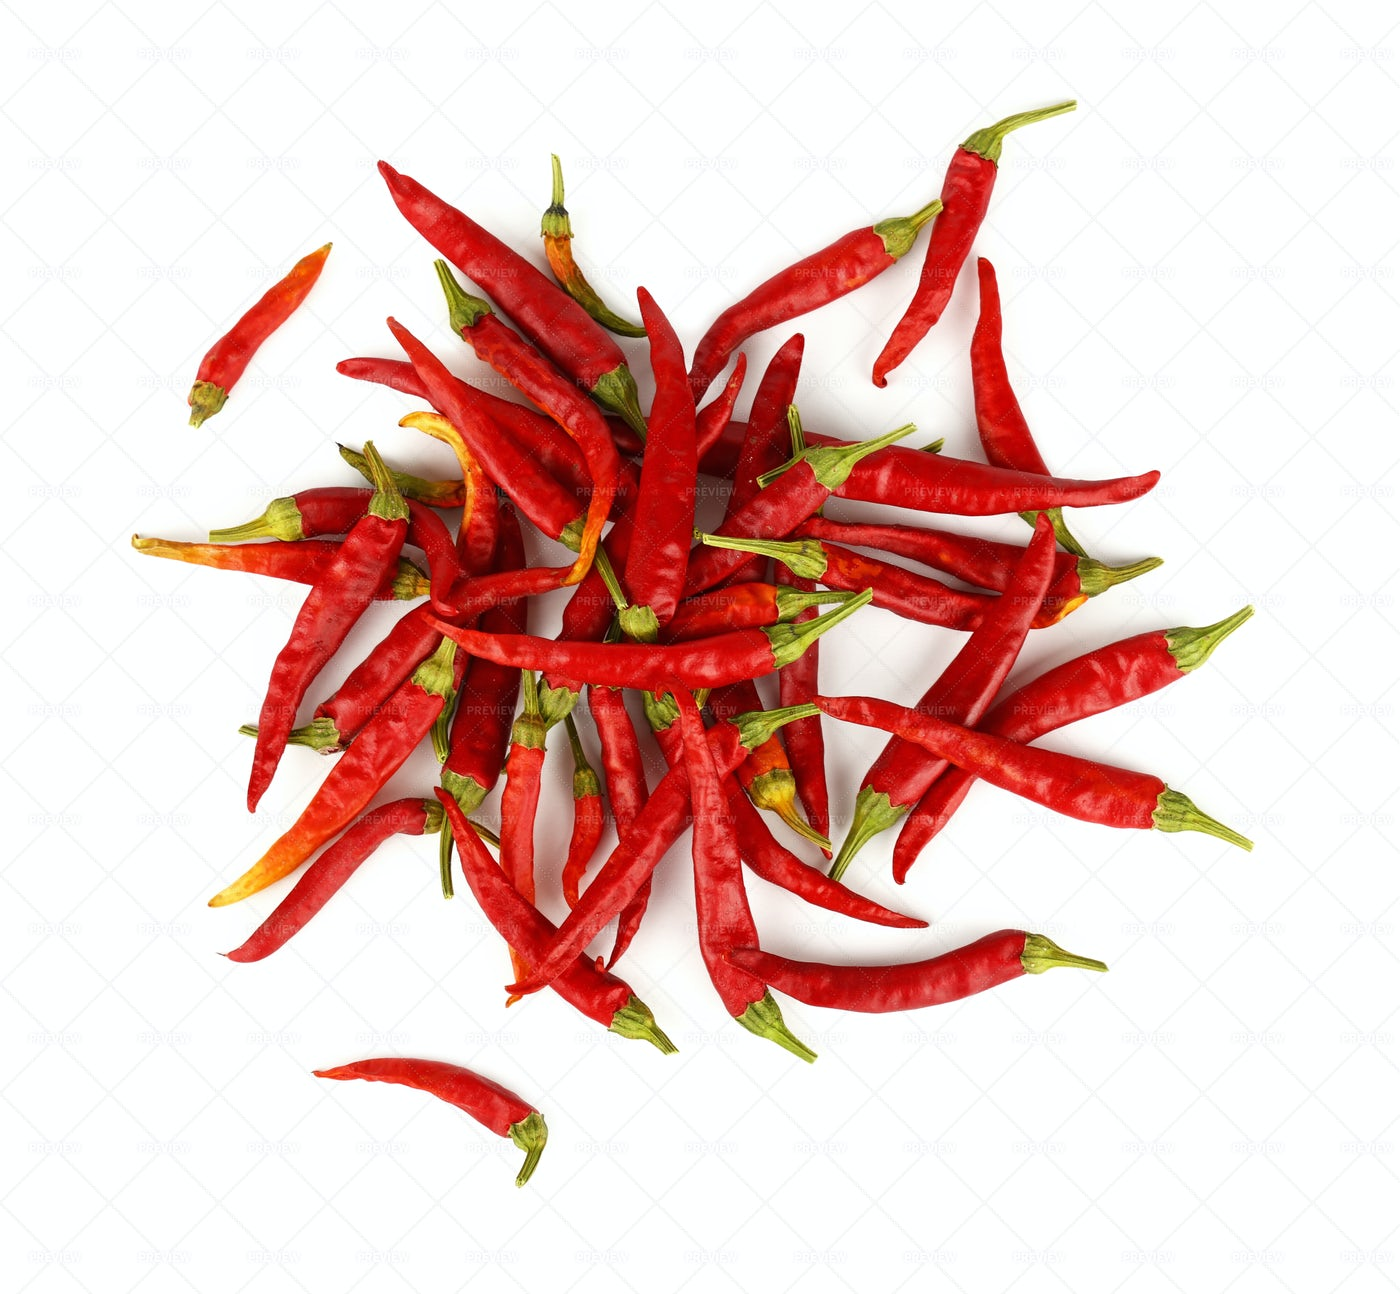 Red Hot Chili Peppers: Stock Photos